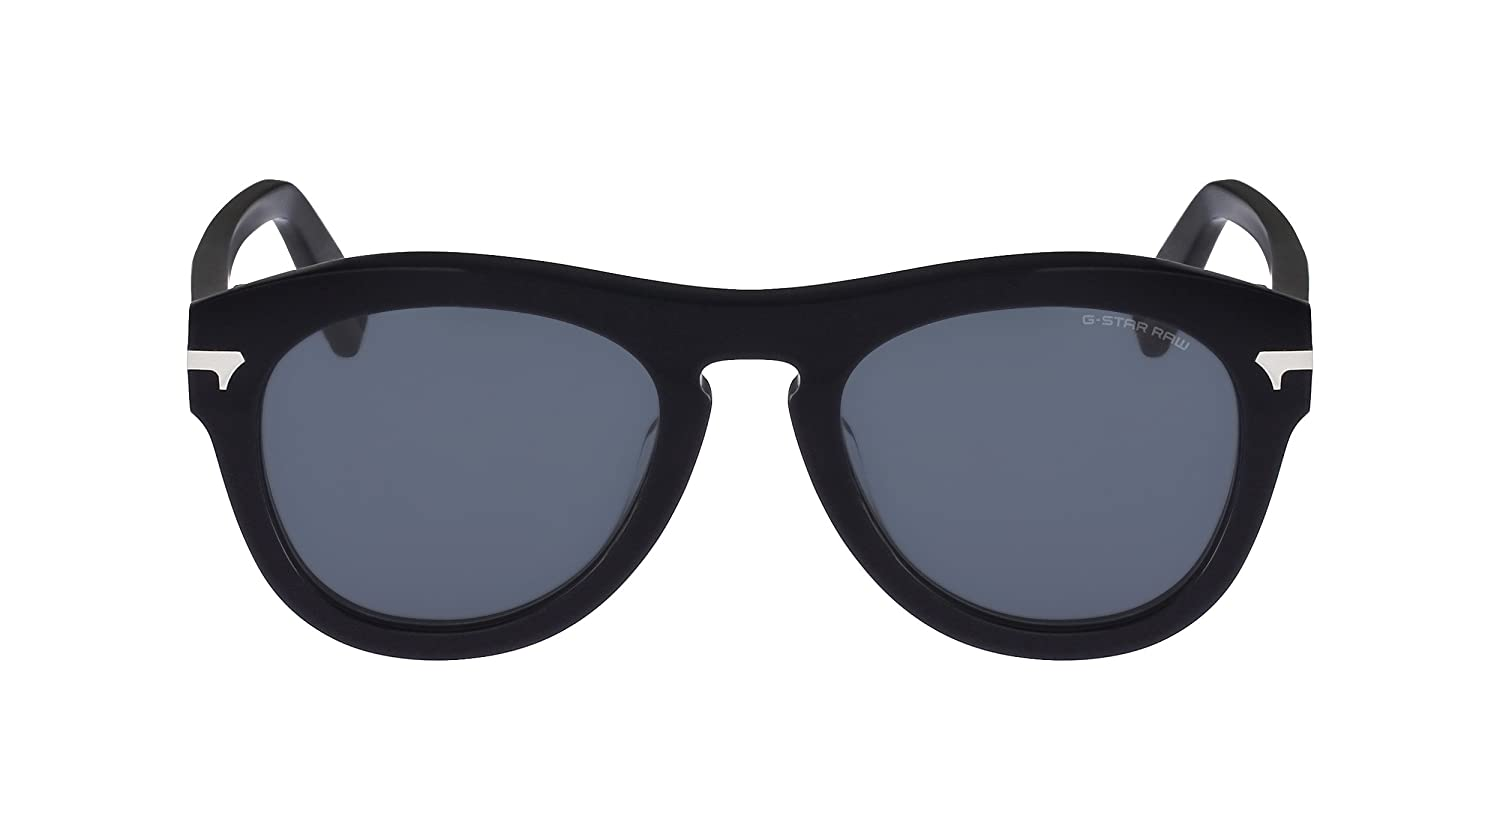 G-STAR RAW GS603S Fat Garber 001 51 Gafas de sol, Black ...